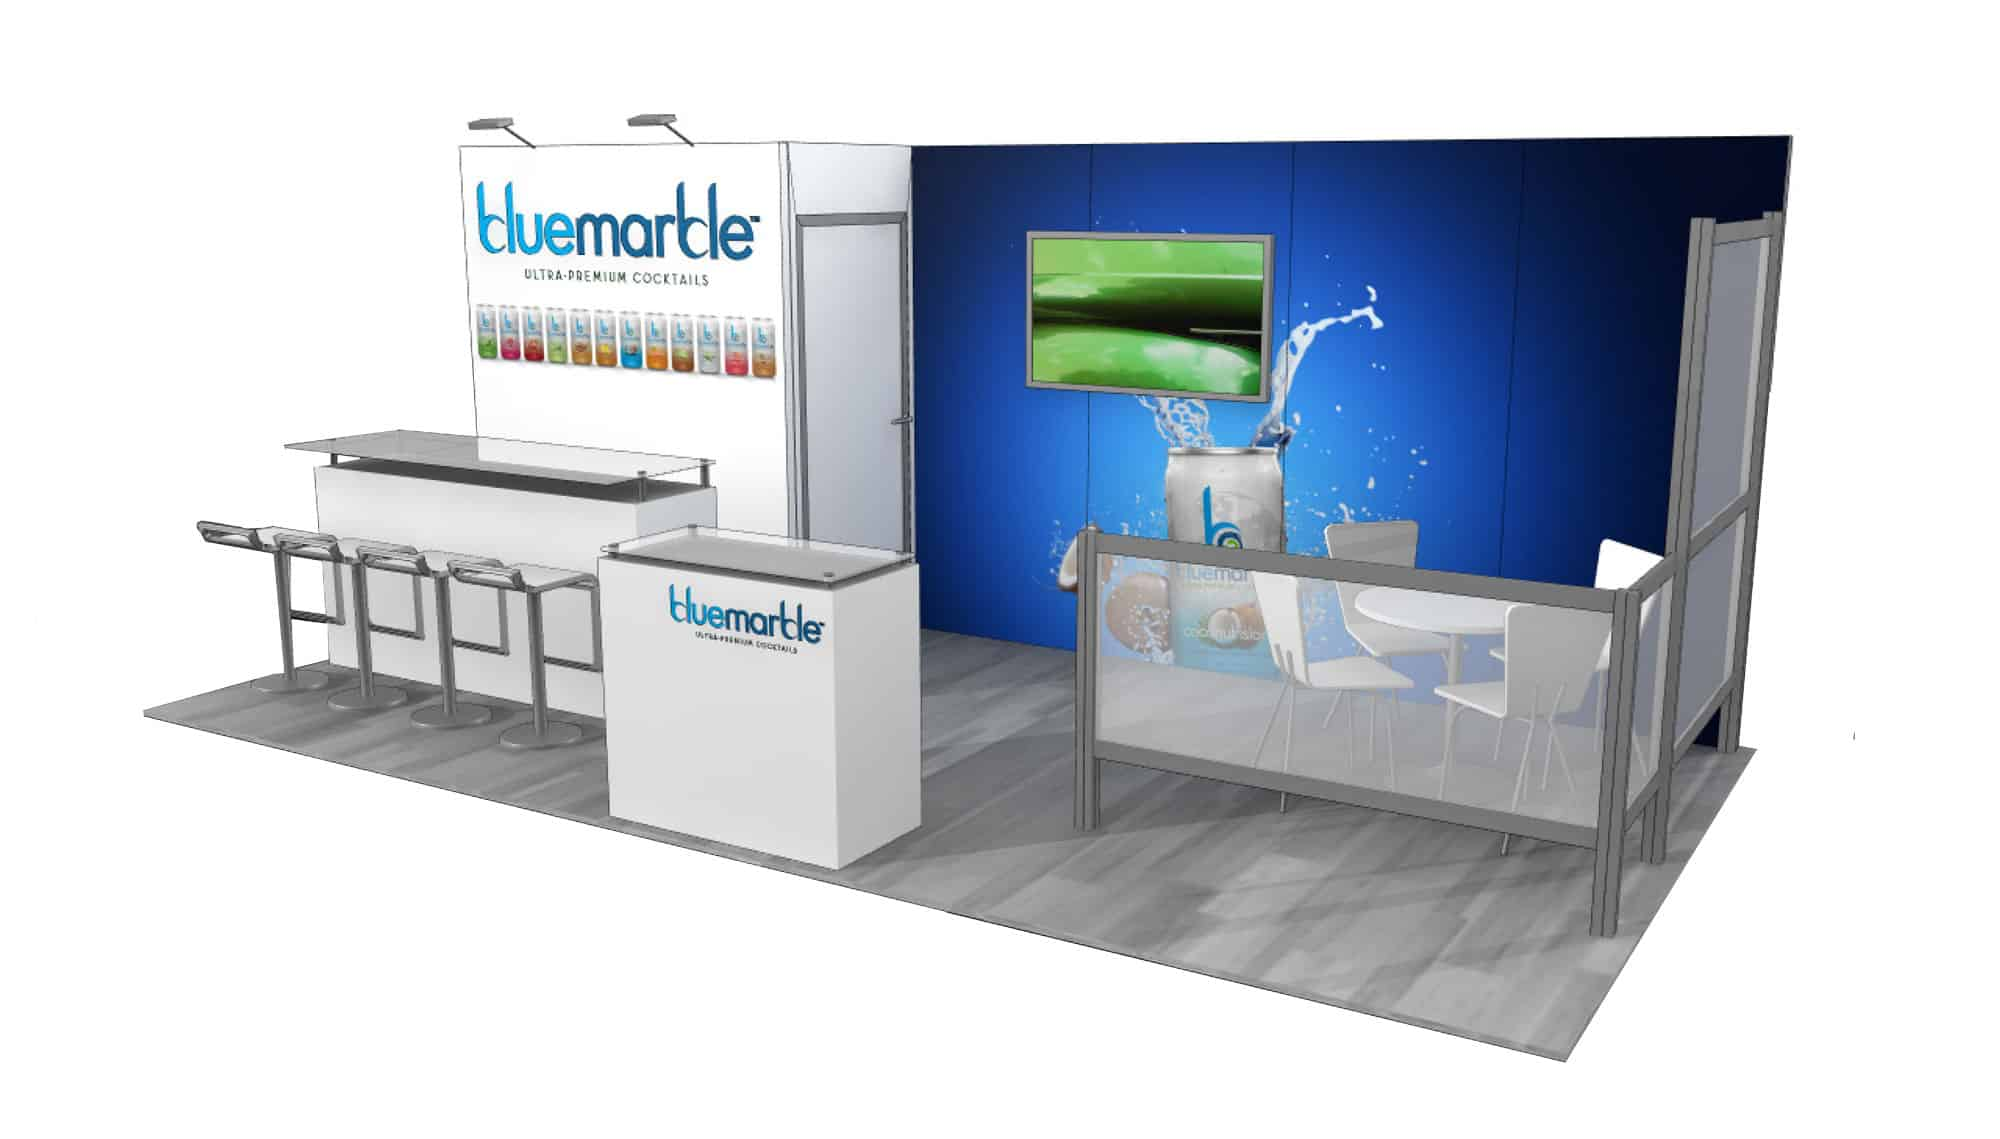 Contact Us About This Booth